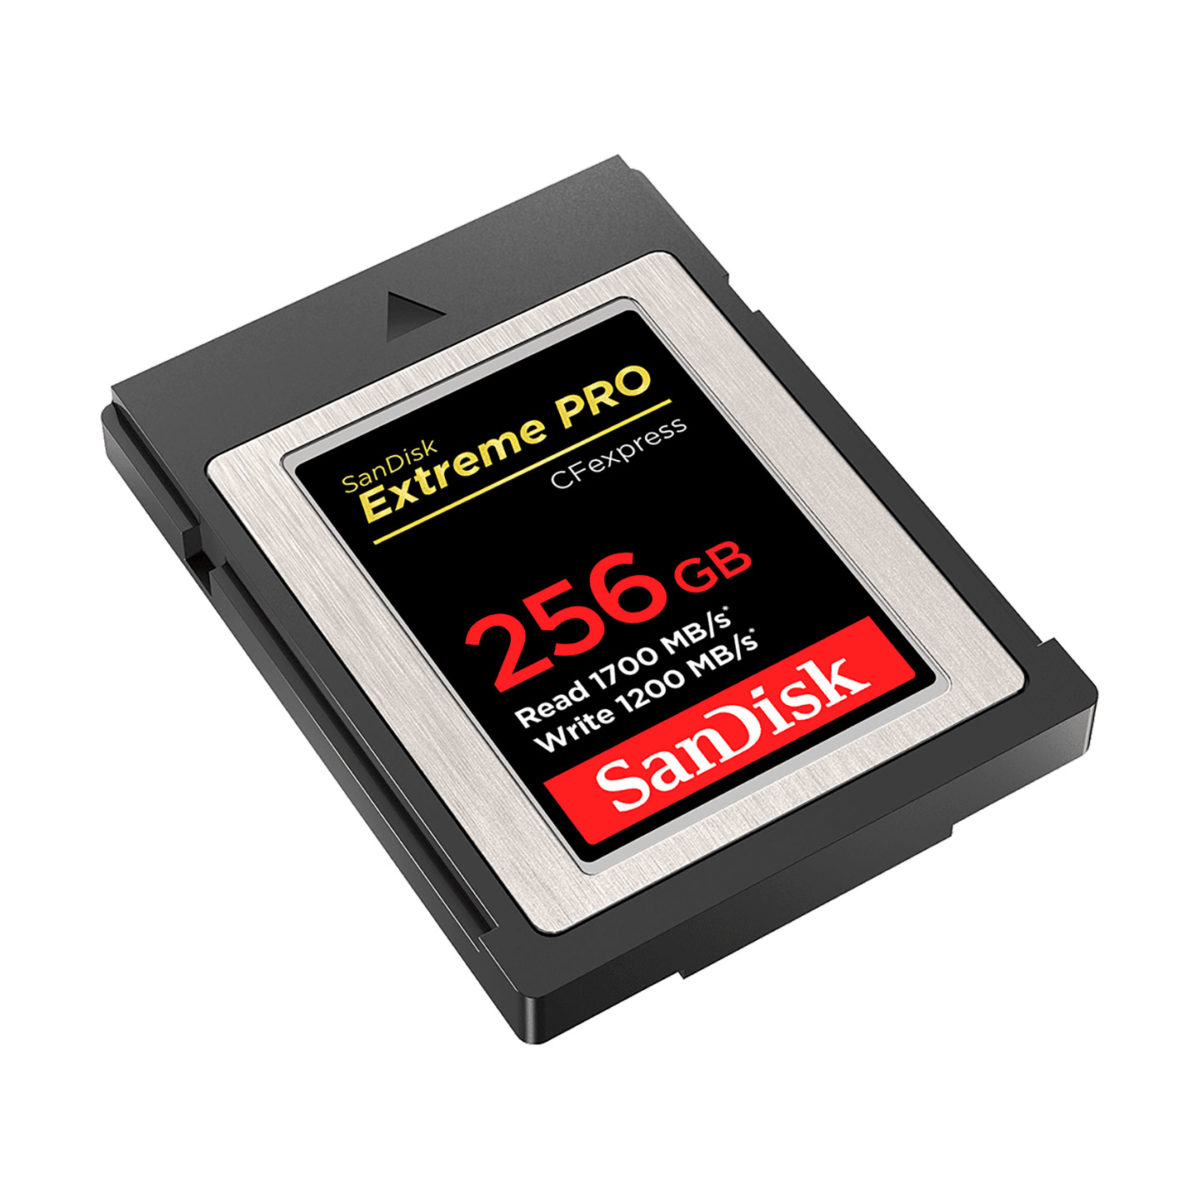 sandisk_extreme_pro_cfexpress_typ_b_256gb_02